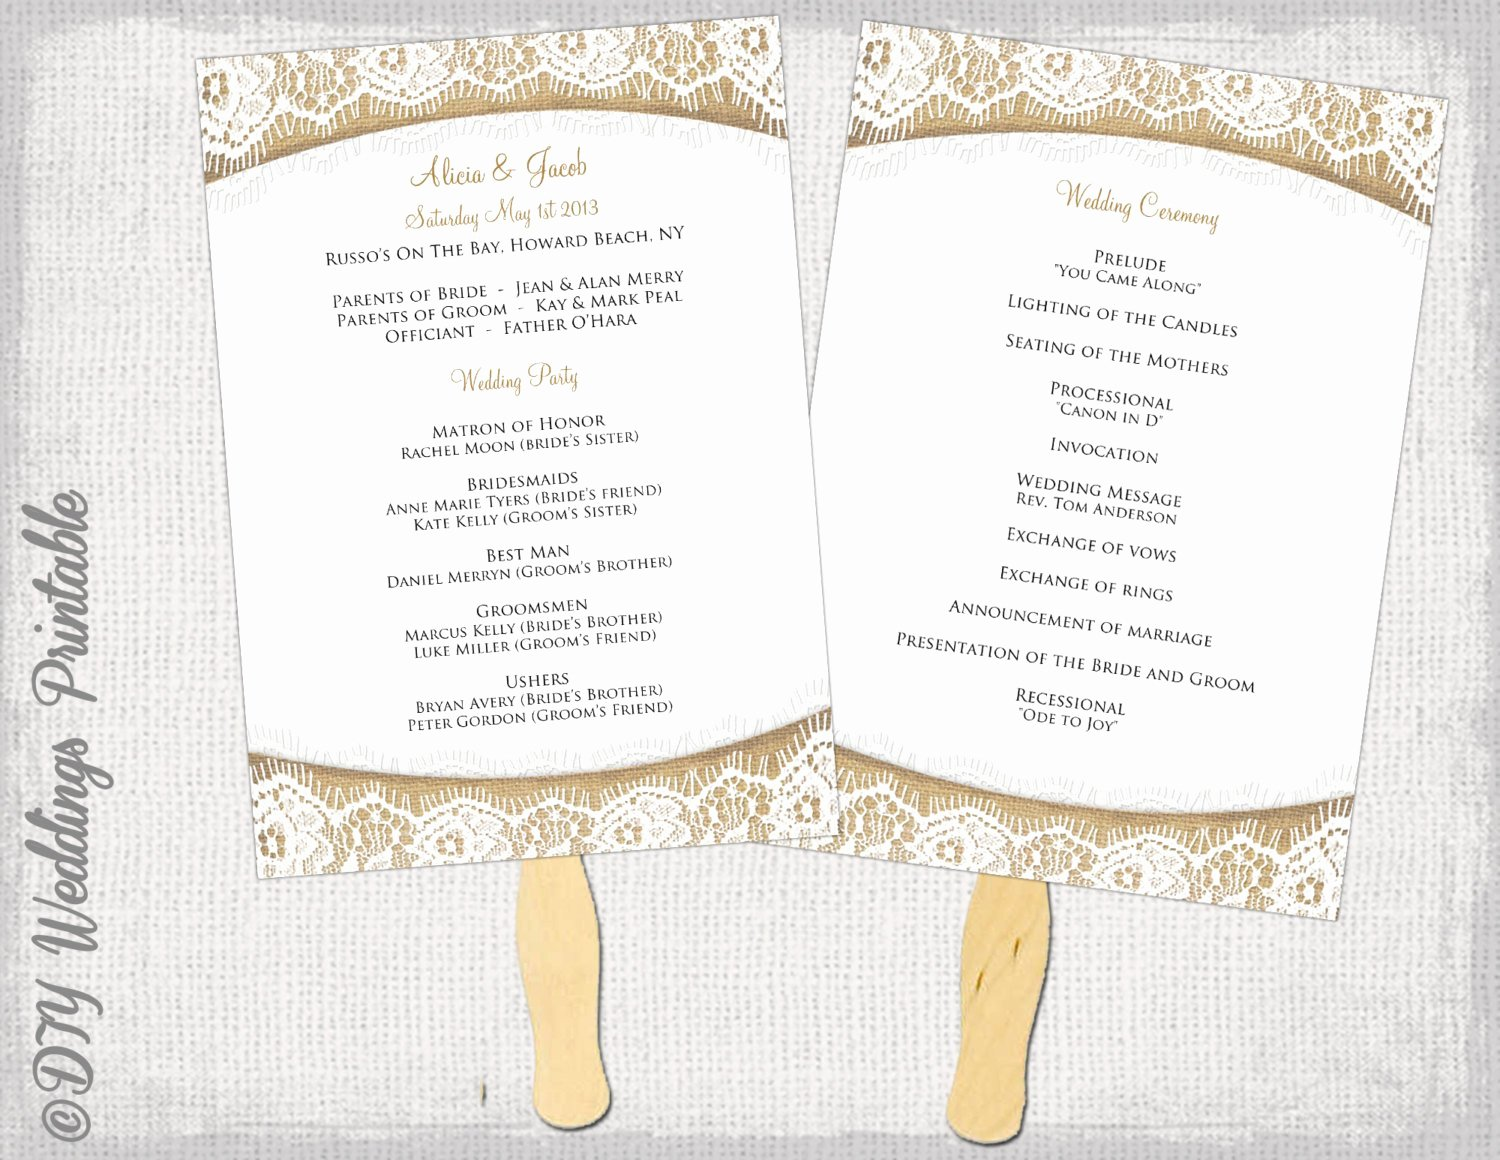 Wedding Church Program Template Luxury Wedding Program Fan Template Rustic Burlap & Lace